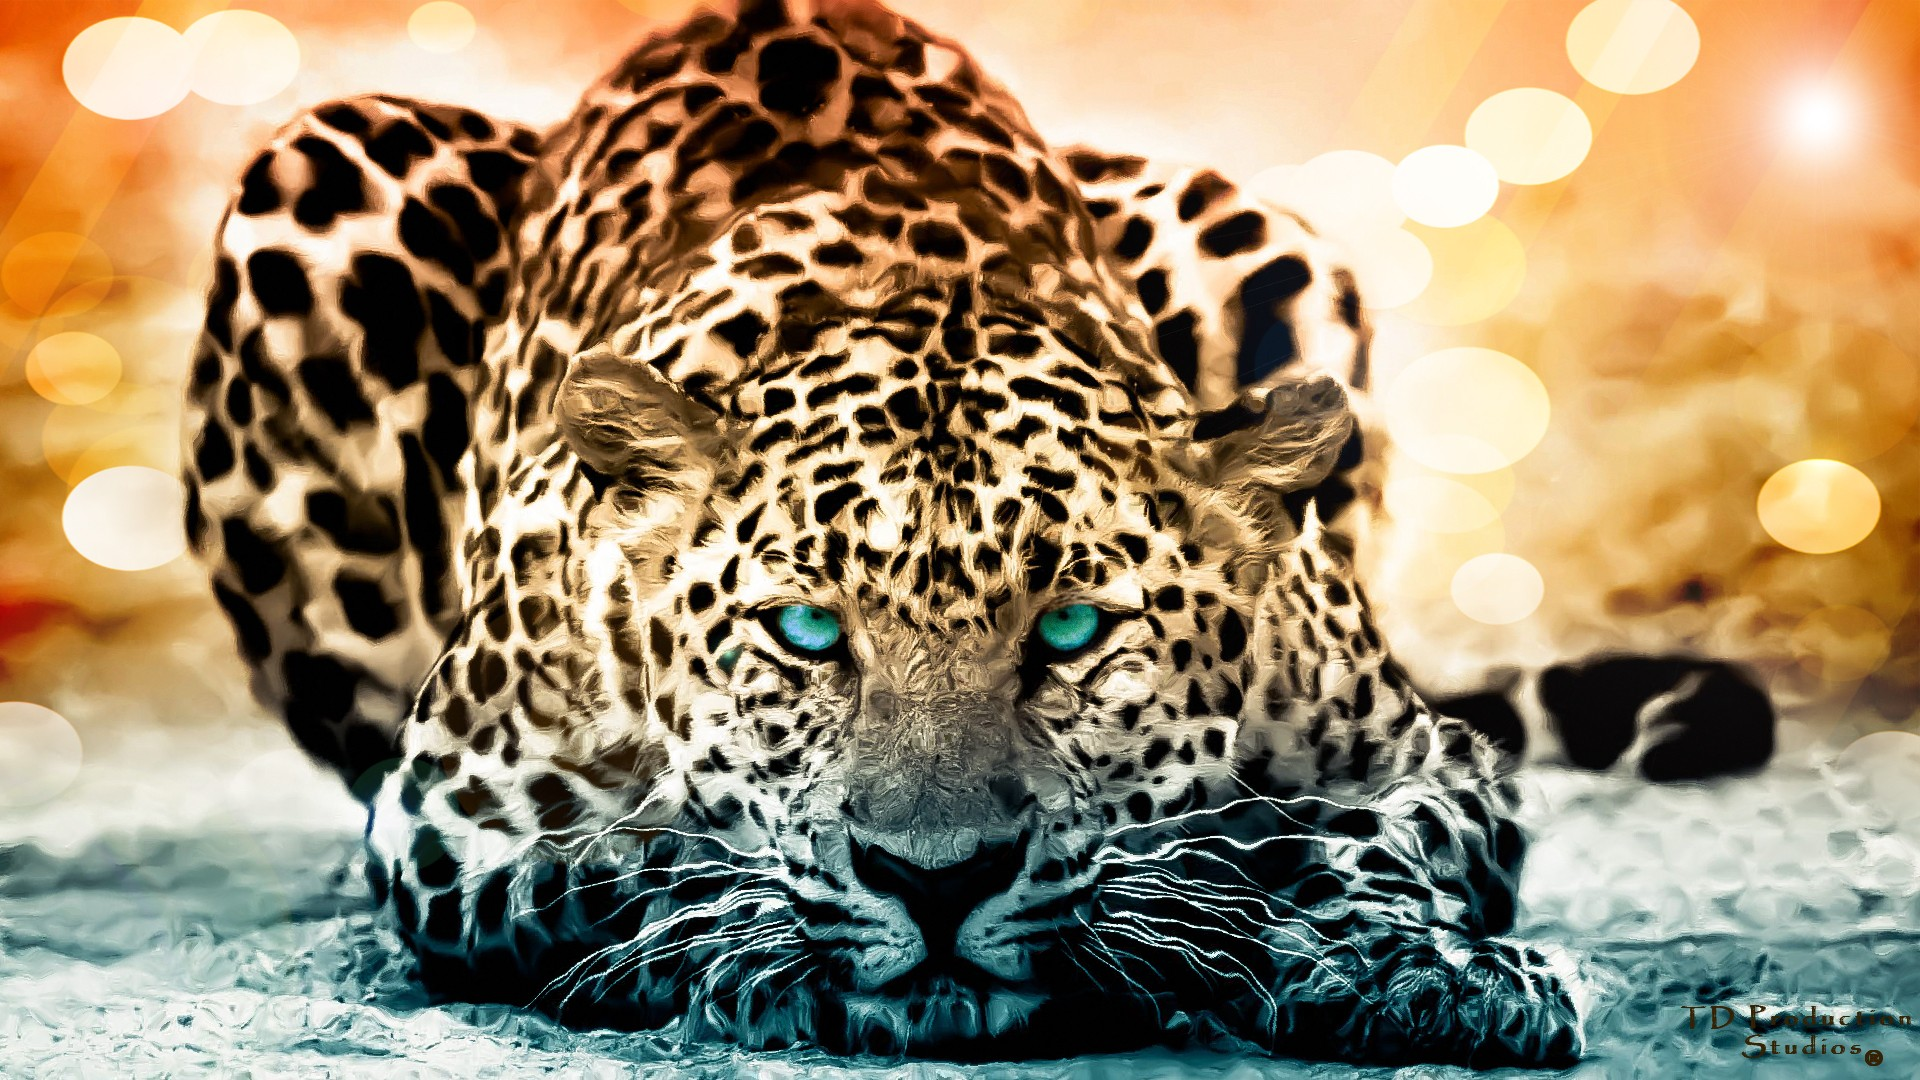 animal wallpapers hd10 - photo #37